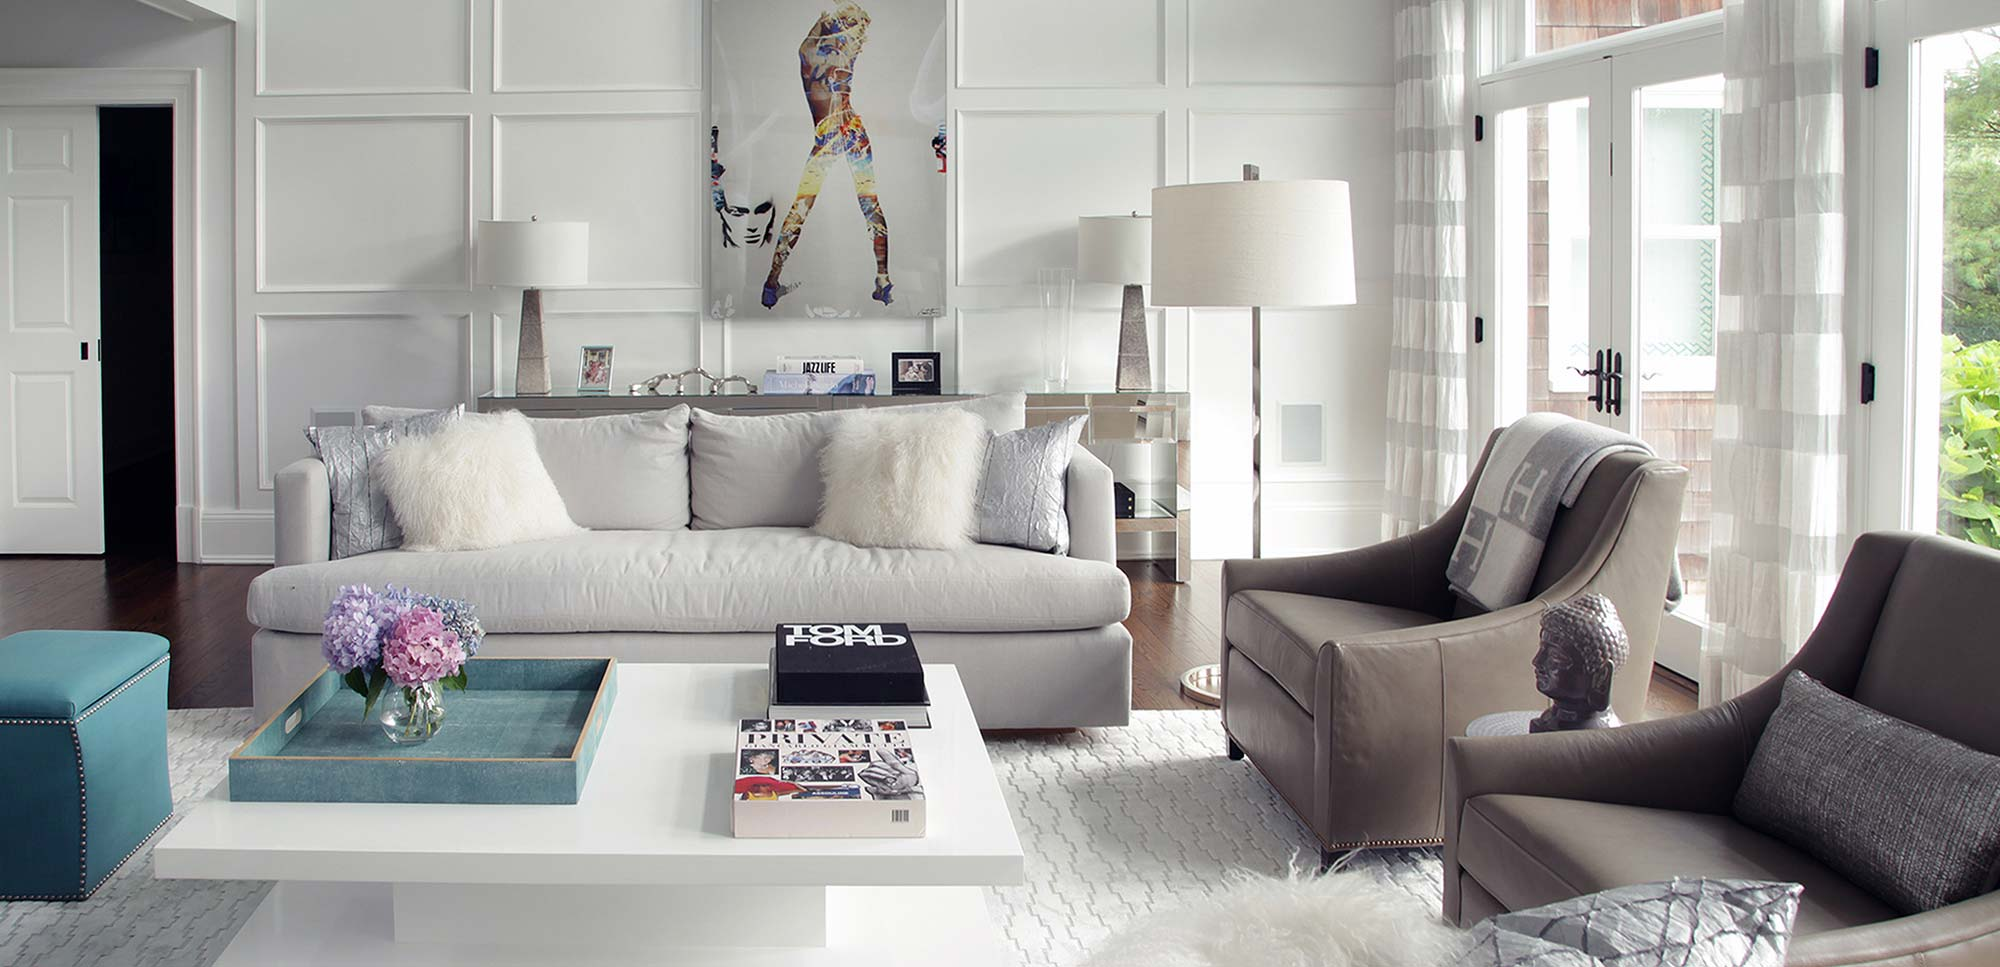 Elsa Soyars | Interior Designer | The Hamptons and New York